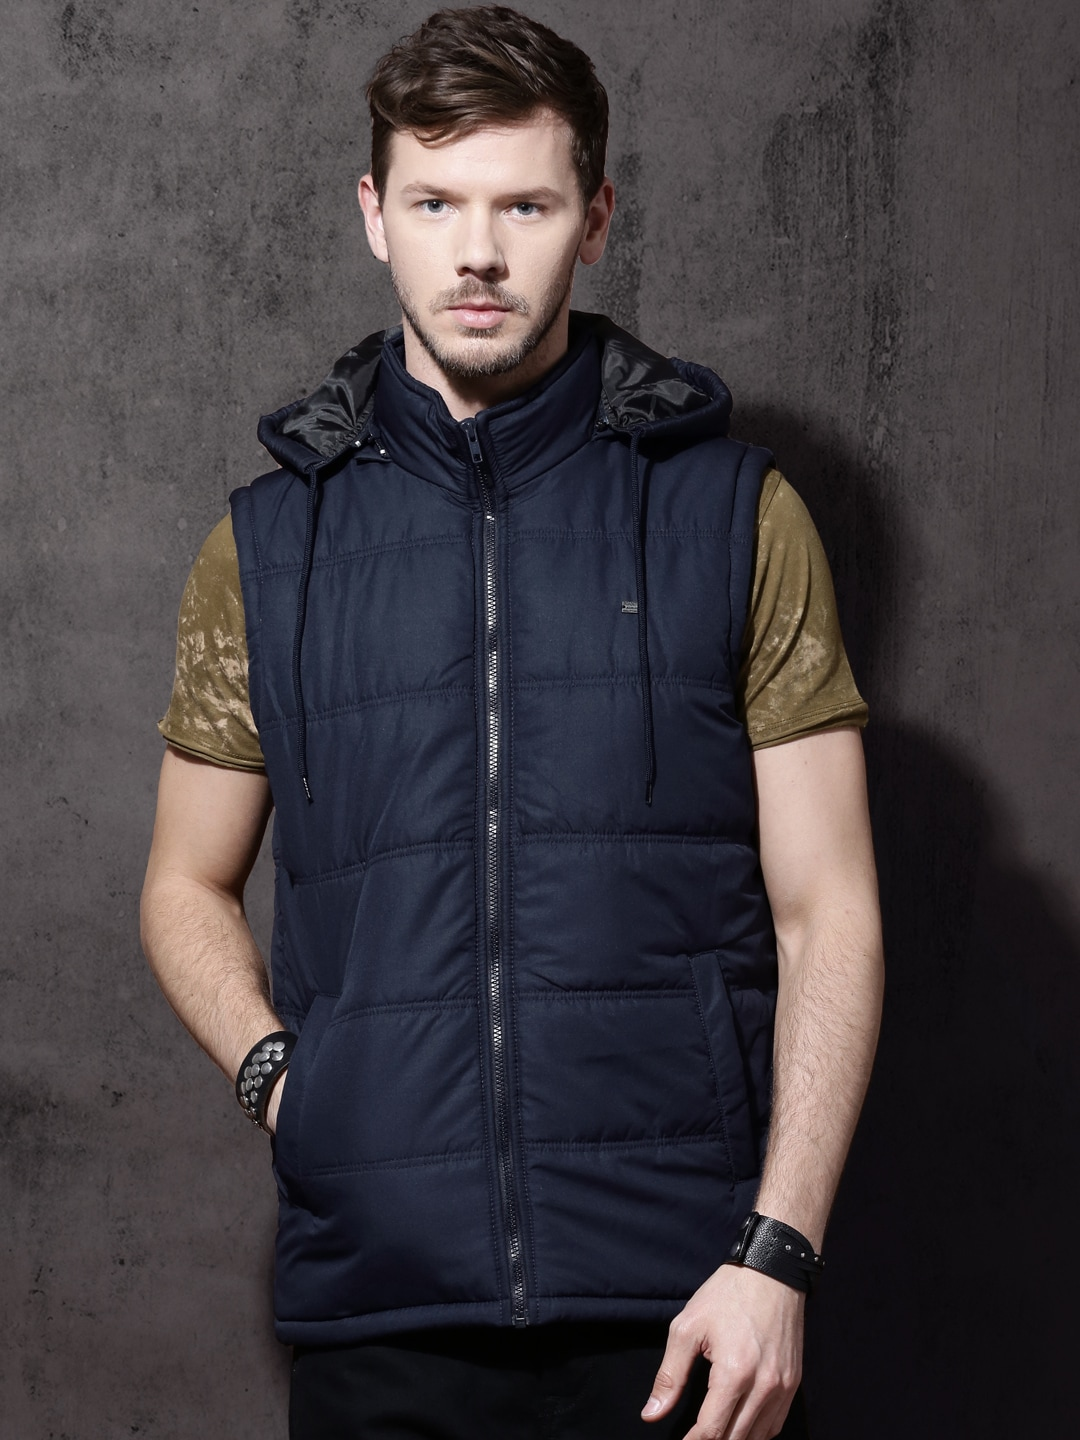 Sleeveless Jeackets Buy Online In India At Fashion Men Casual Parka Down Coat Hooded Padded Zipper Best Price